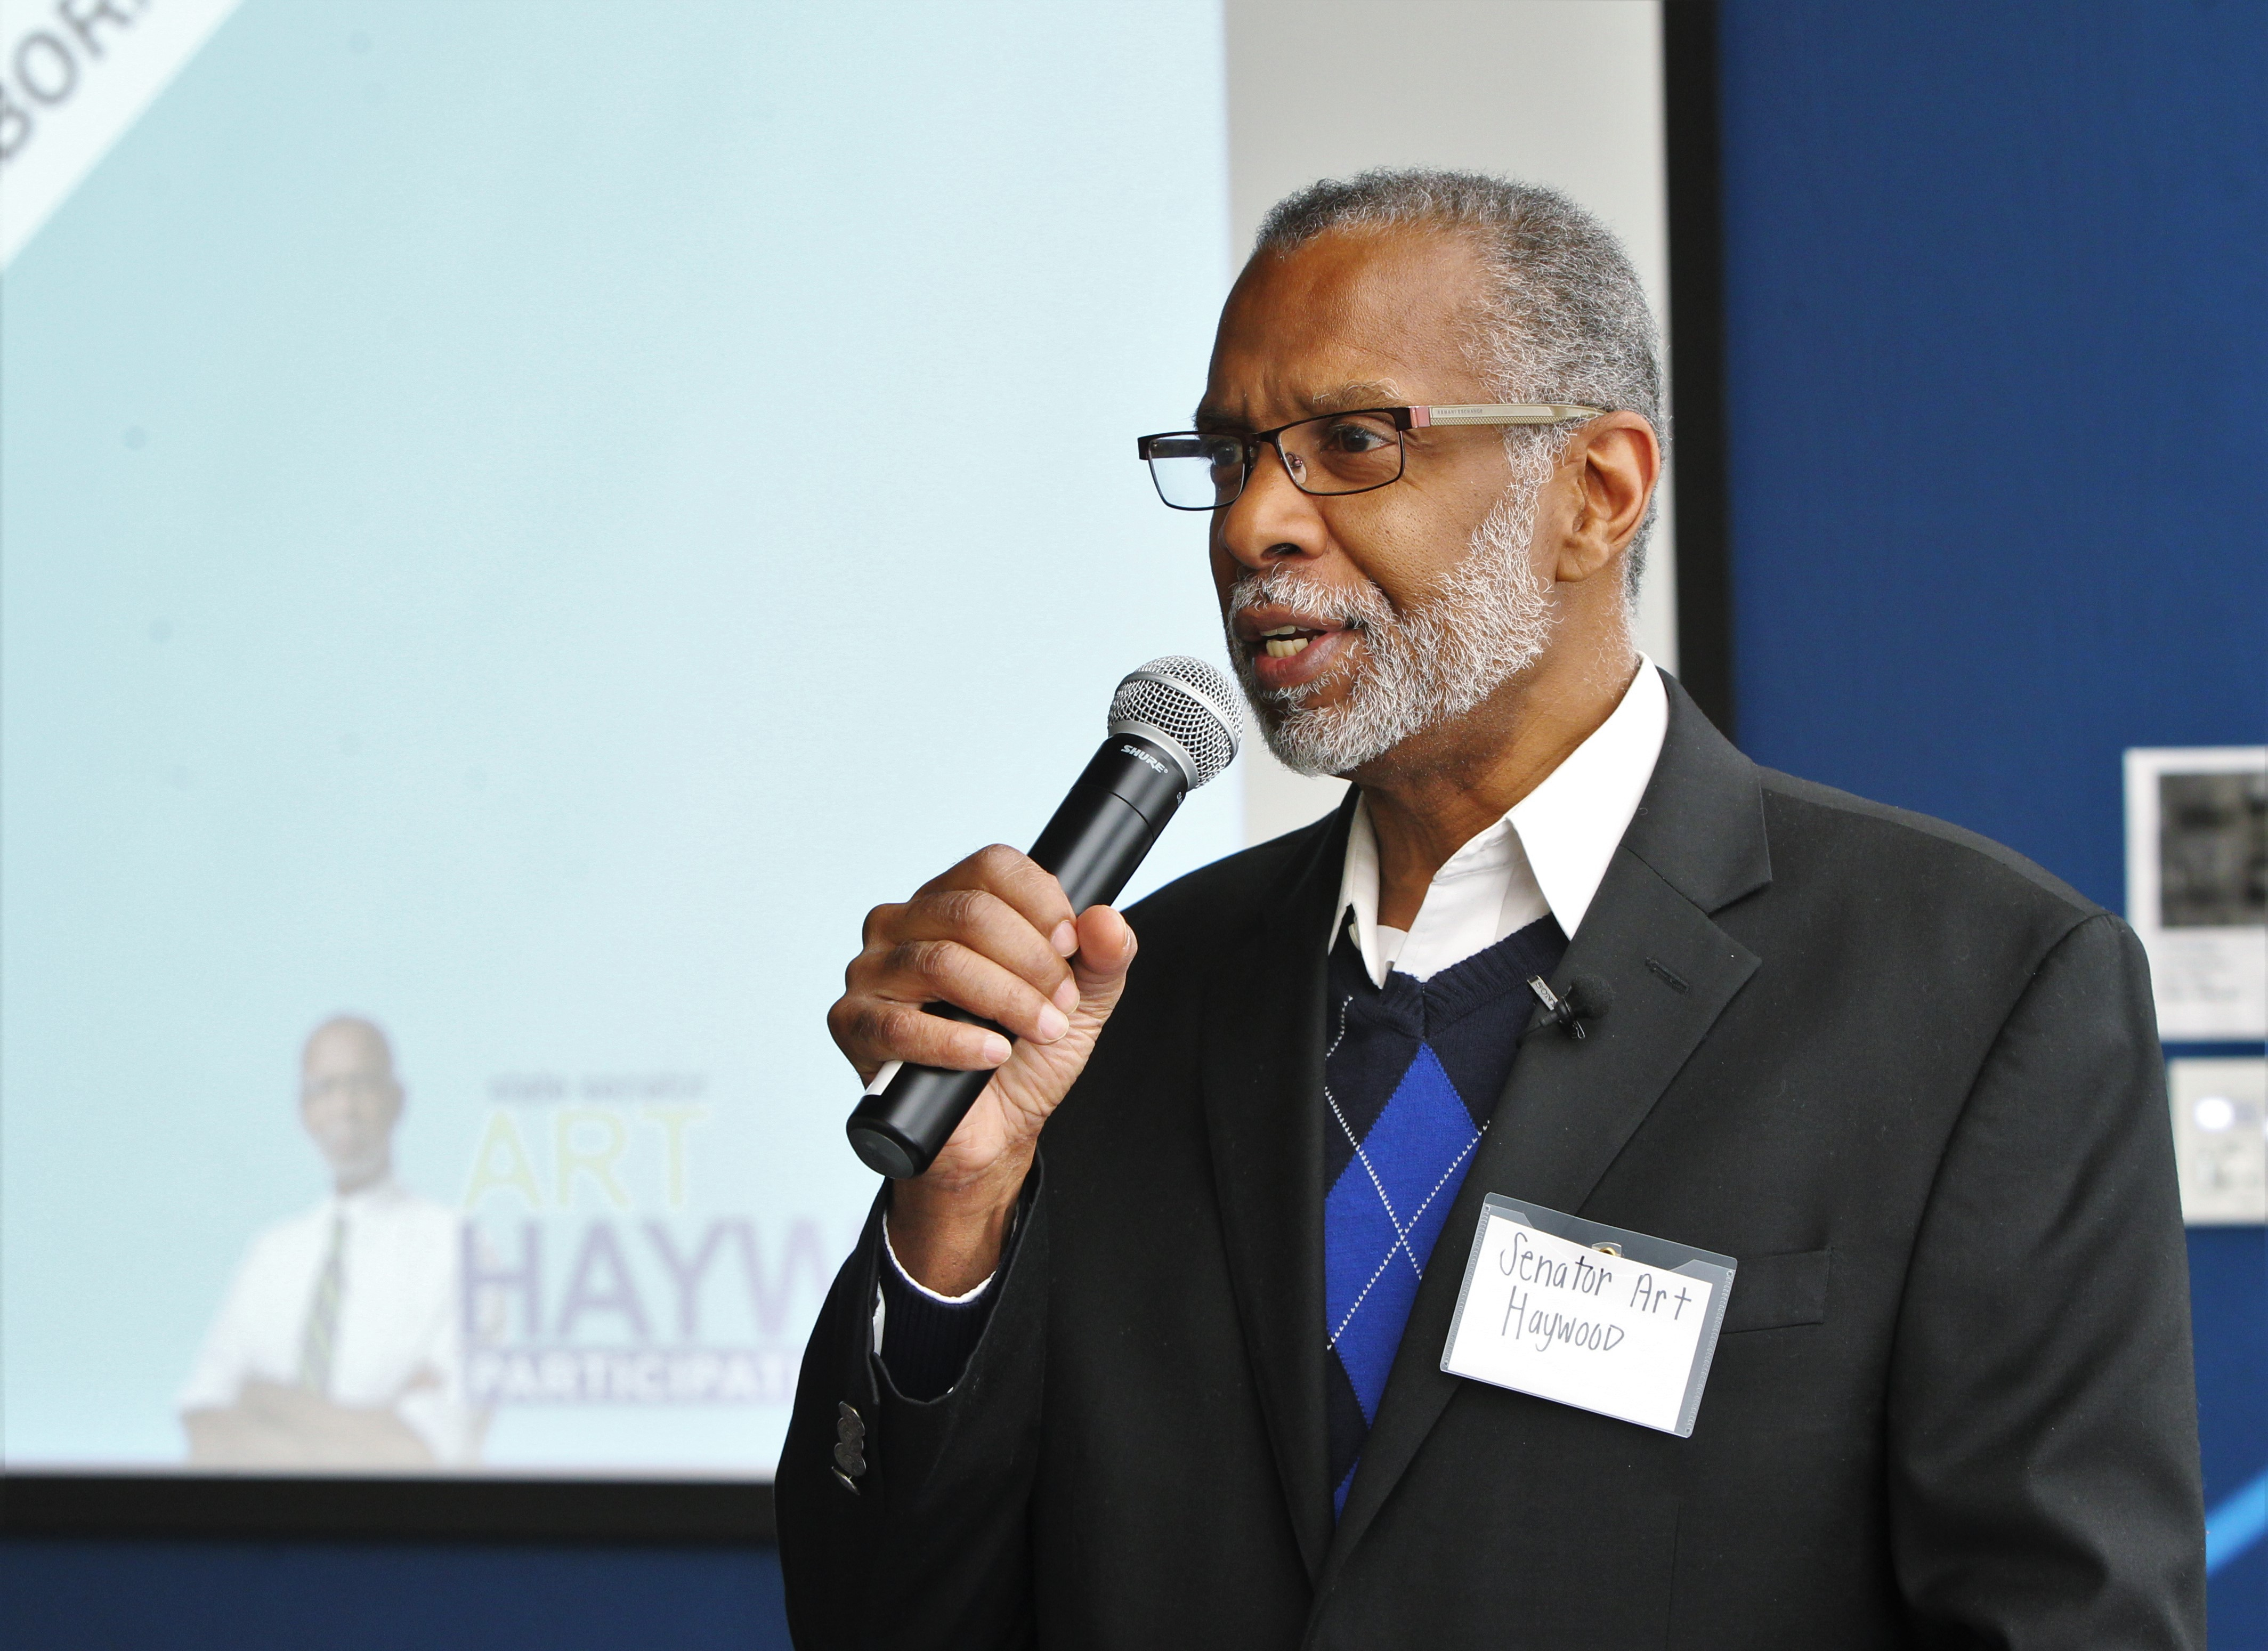 January 26, 2019: Senator Art Haywood hosts his 3rd annual Mentoring Conference at La Salle University.